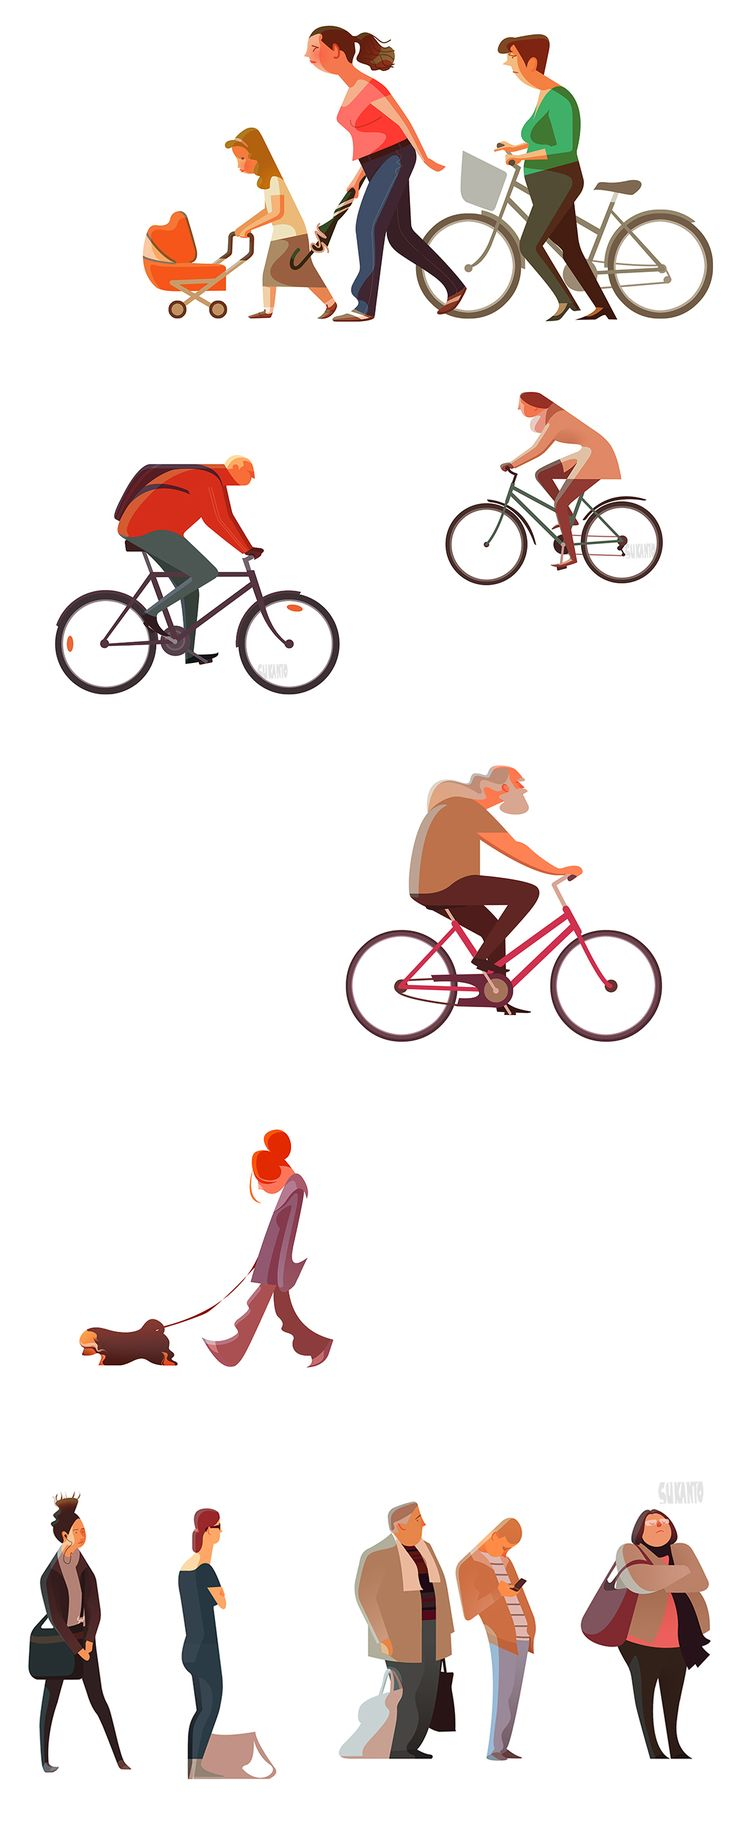 Commuters 2 by Sukanto Debnath - Amazing clean style!